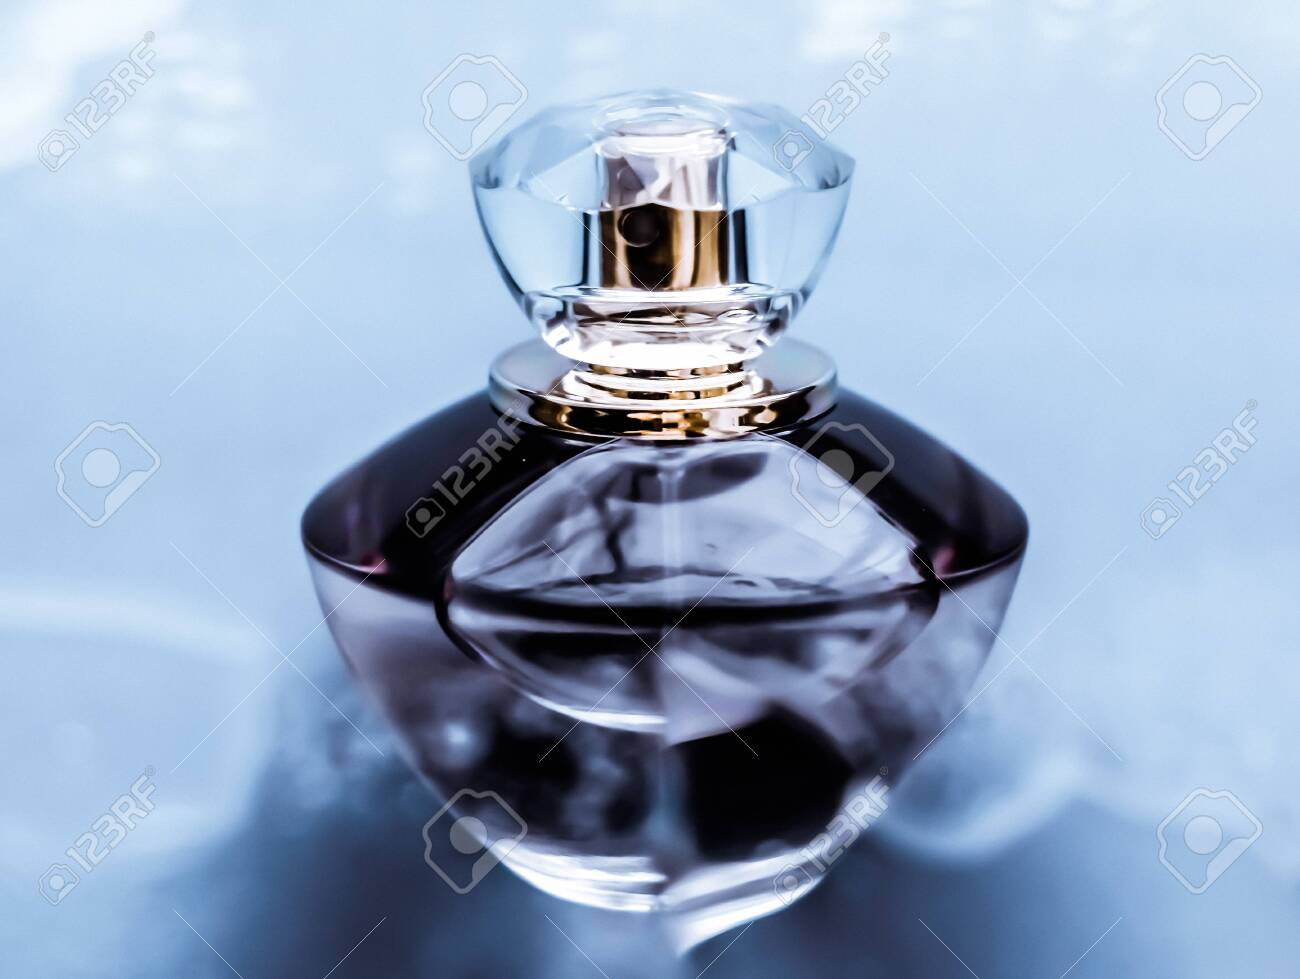 Perfumery, cosmetics and branding concept - Perfume bottle under blue water, fresh sea coastal scent as glamour fragrance and eau de parfum product as holiday gift, luxury beauty spa brand present - 134346463